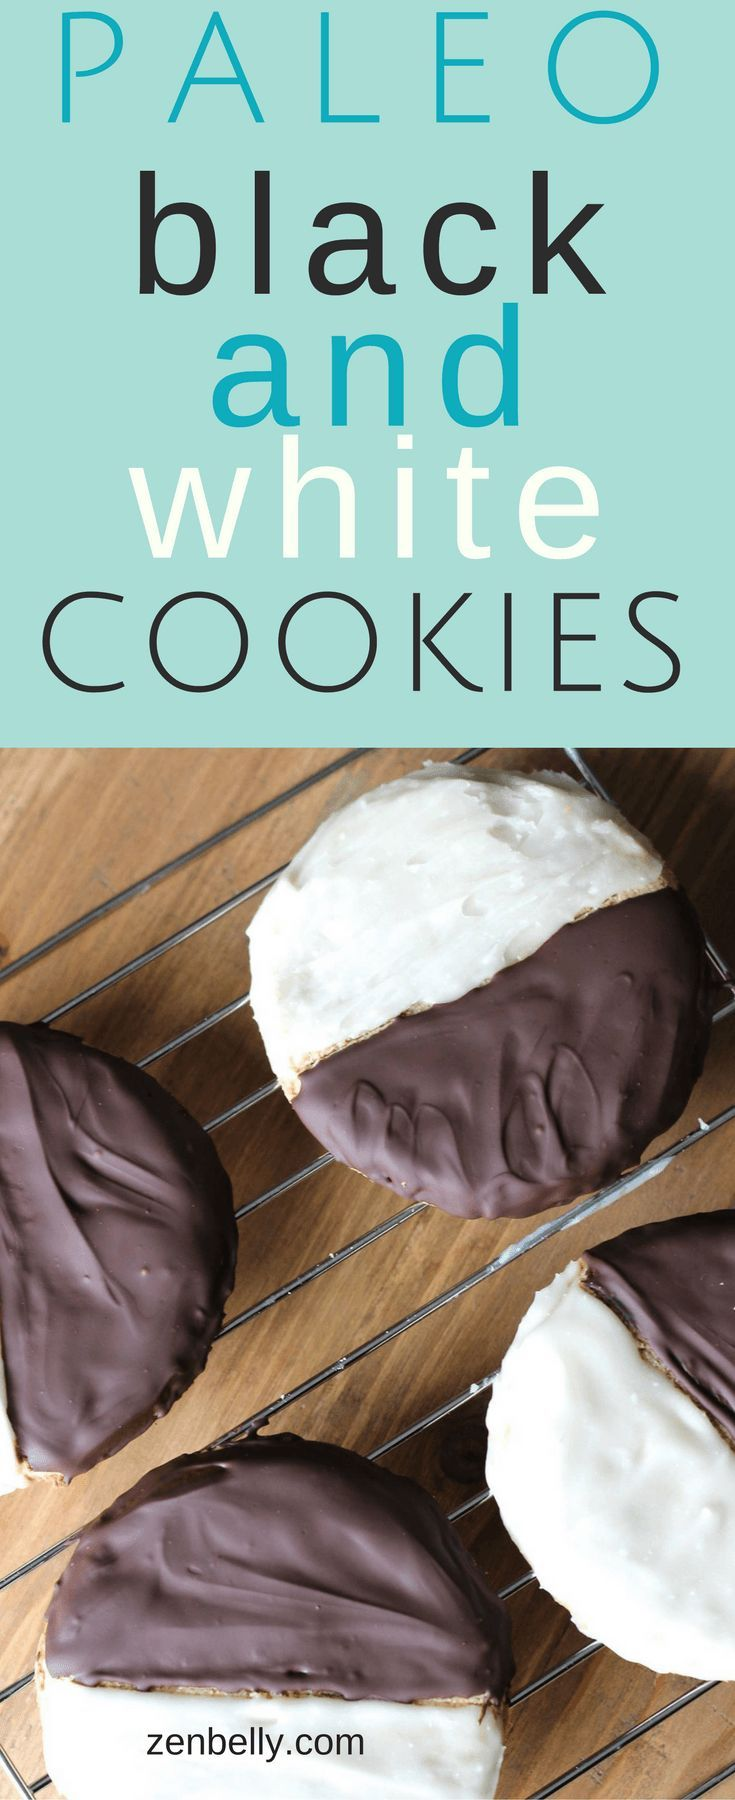 Paleo black and white cookies. (Requires almond flour and a little tapioca flour.)